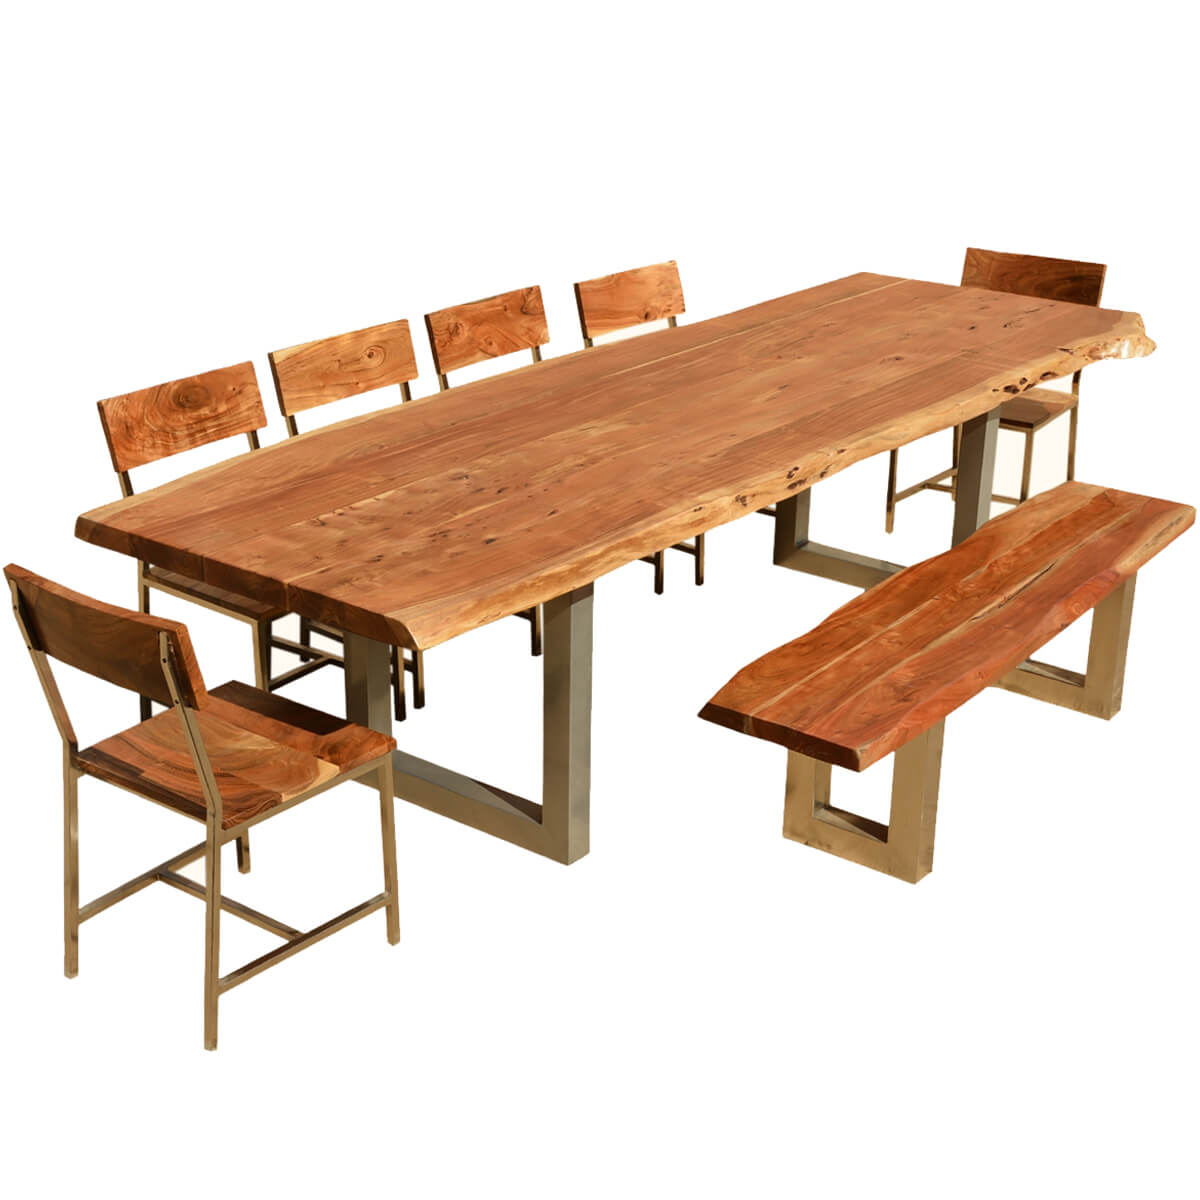 "117"" Live Edge Dining Table W 6 Chairs & Bench"